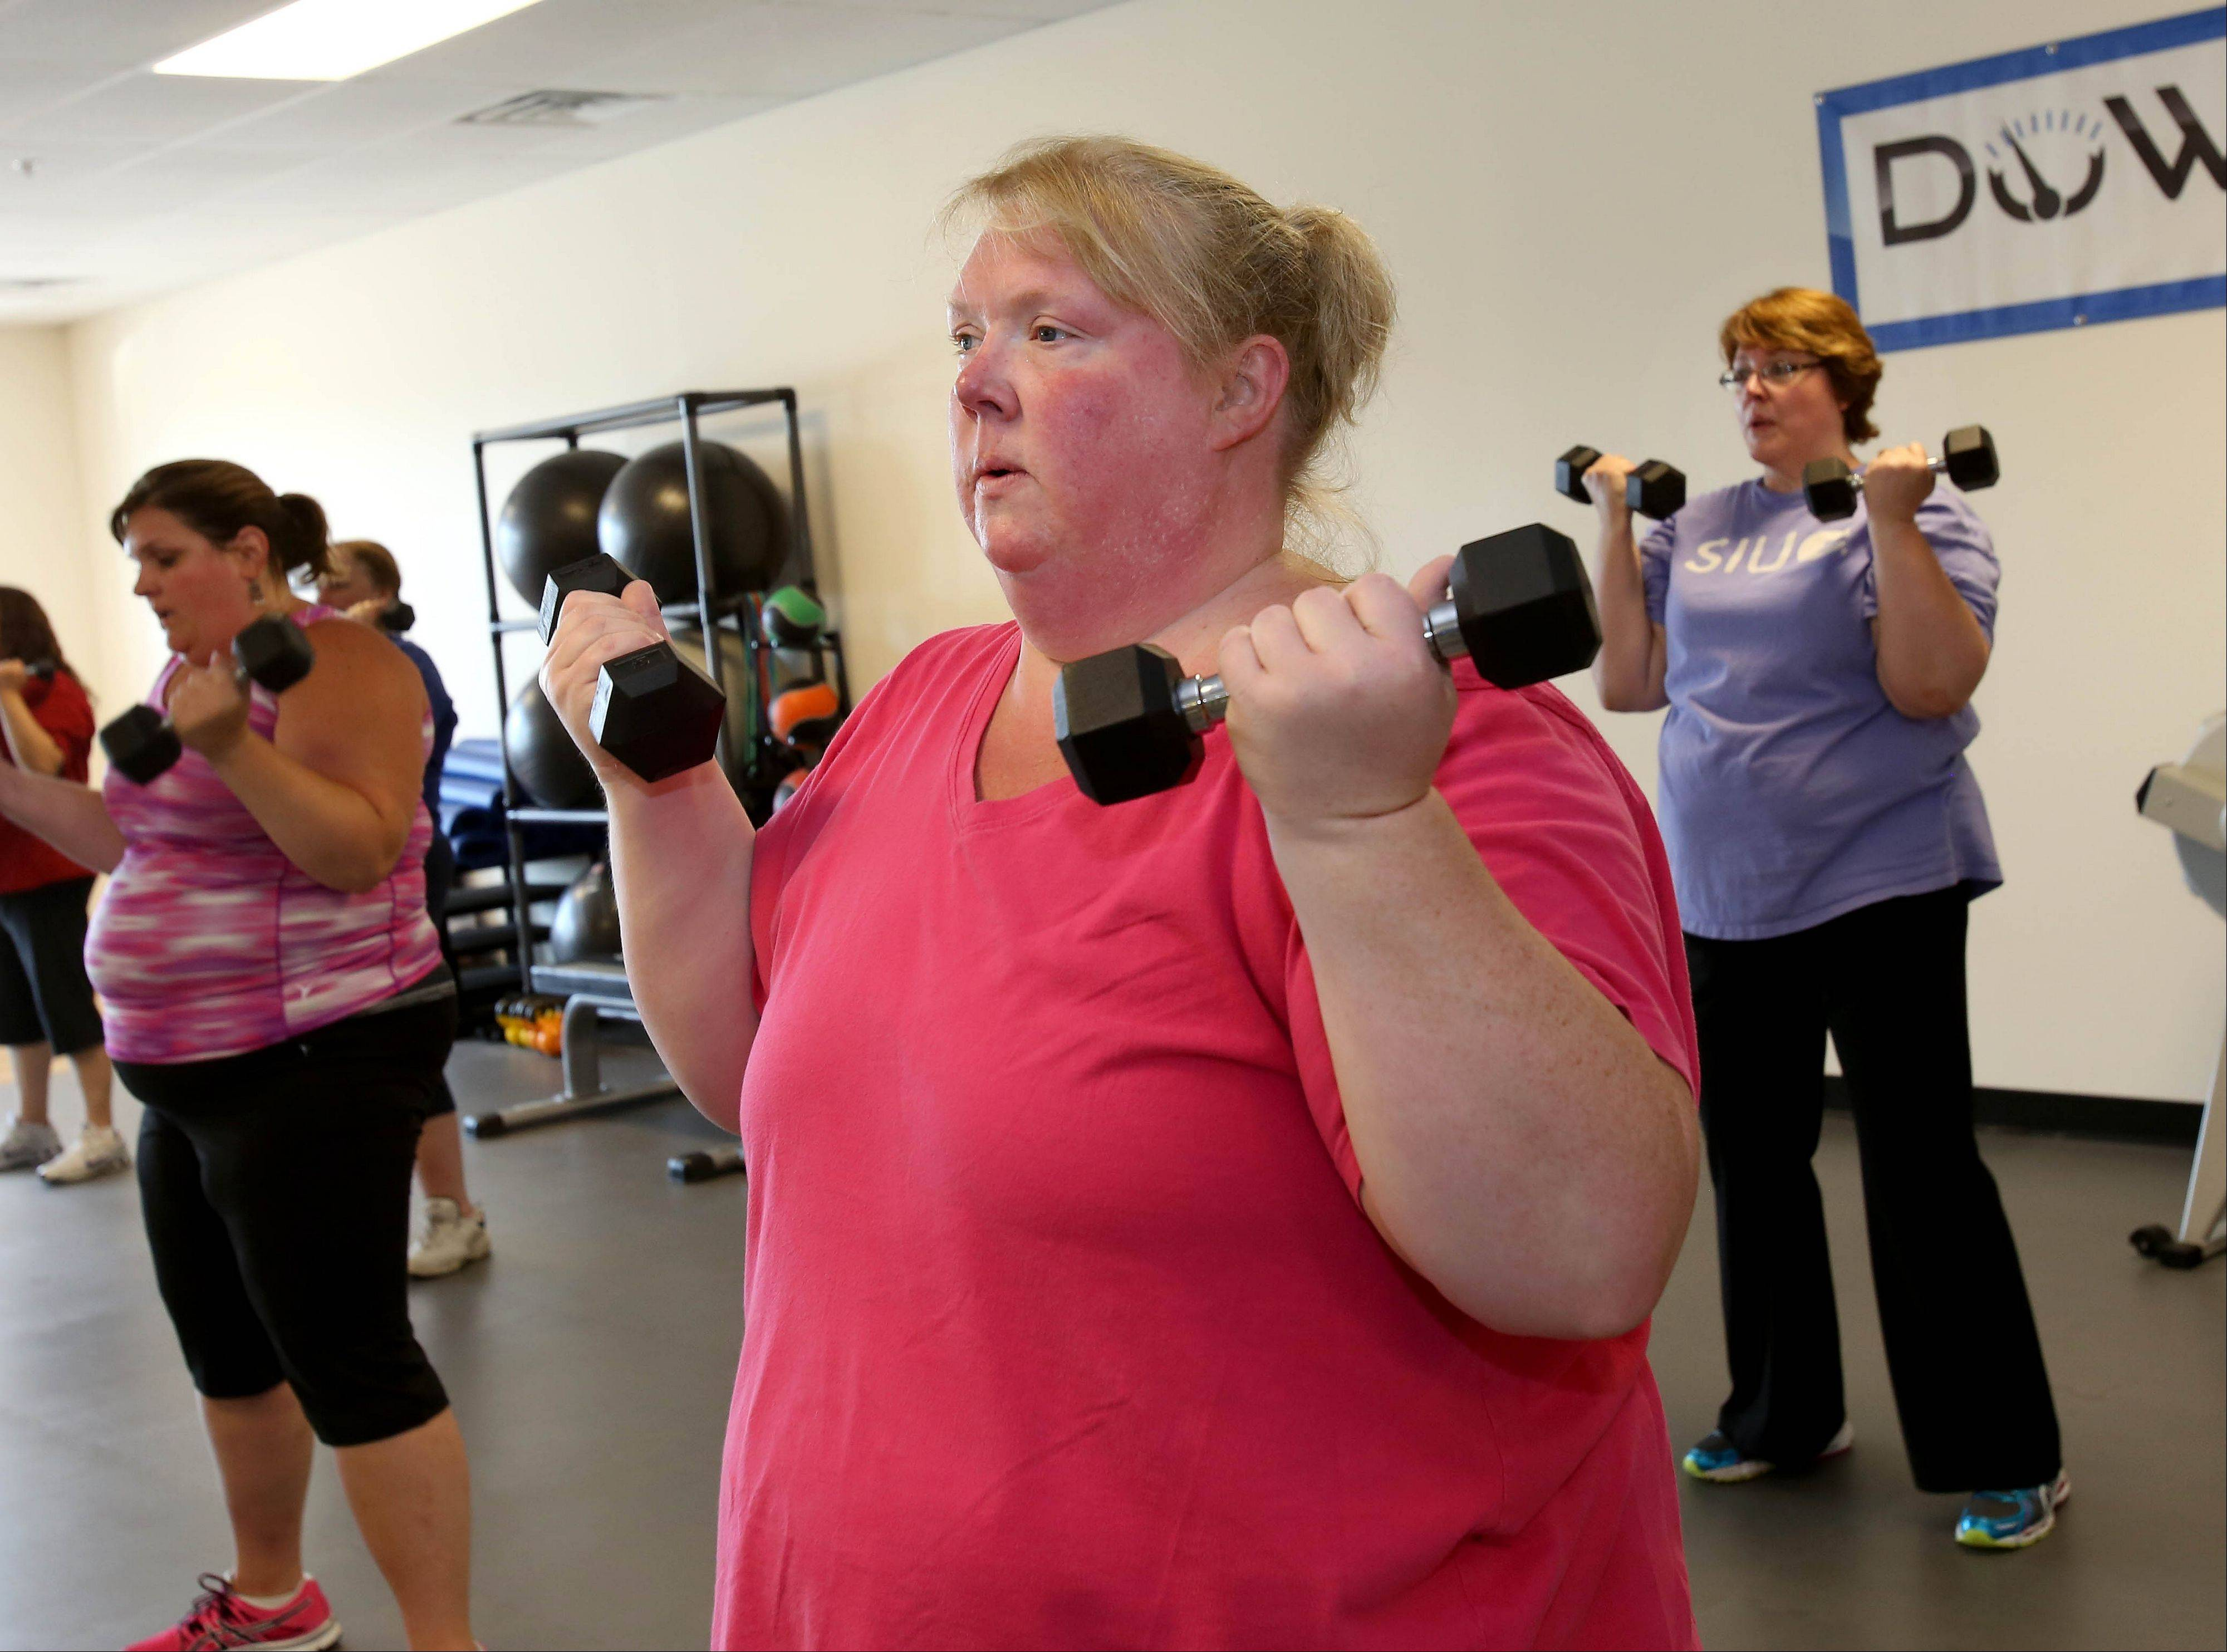 Kim Tremblay of Bolingbrook does curl presses during a recent workout at Downsize Fitness in Naperville. The gym offers semiprivate classes tailored to people who have at least 50 pounds to lose.